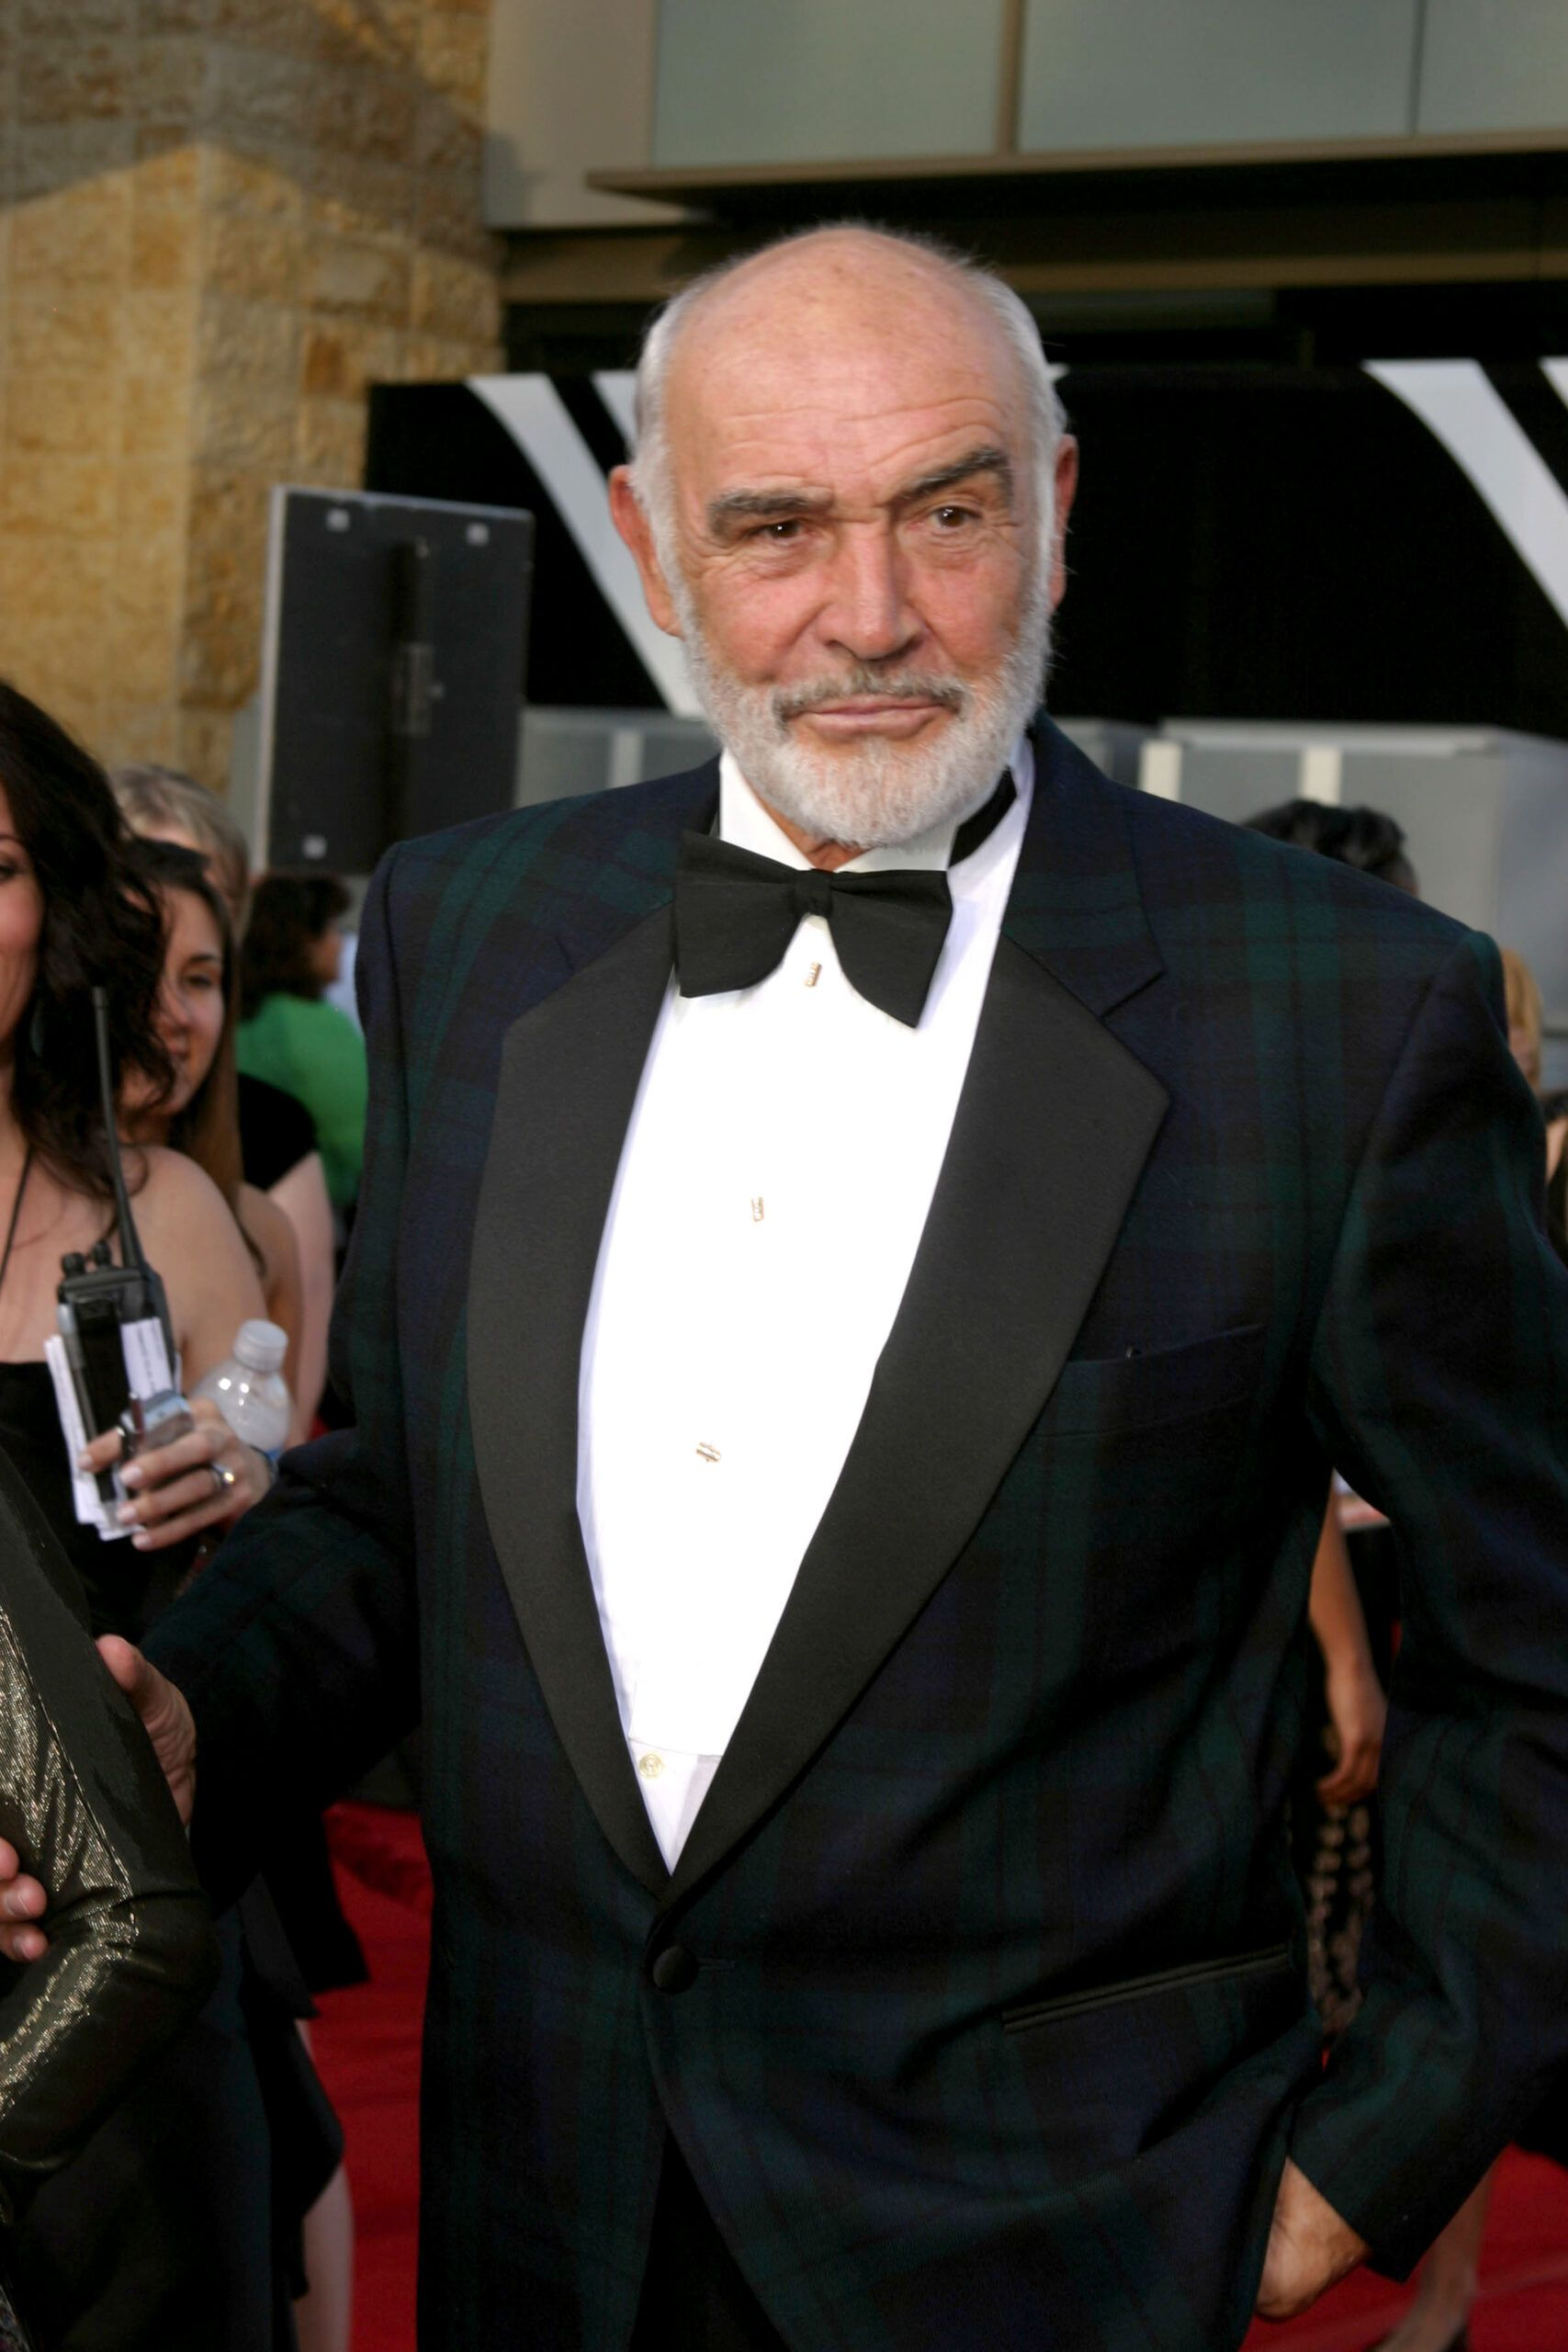 Iconic Actor Sean Connery Has Passed Away At 90 - Fame10